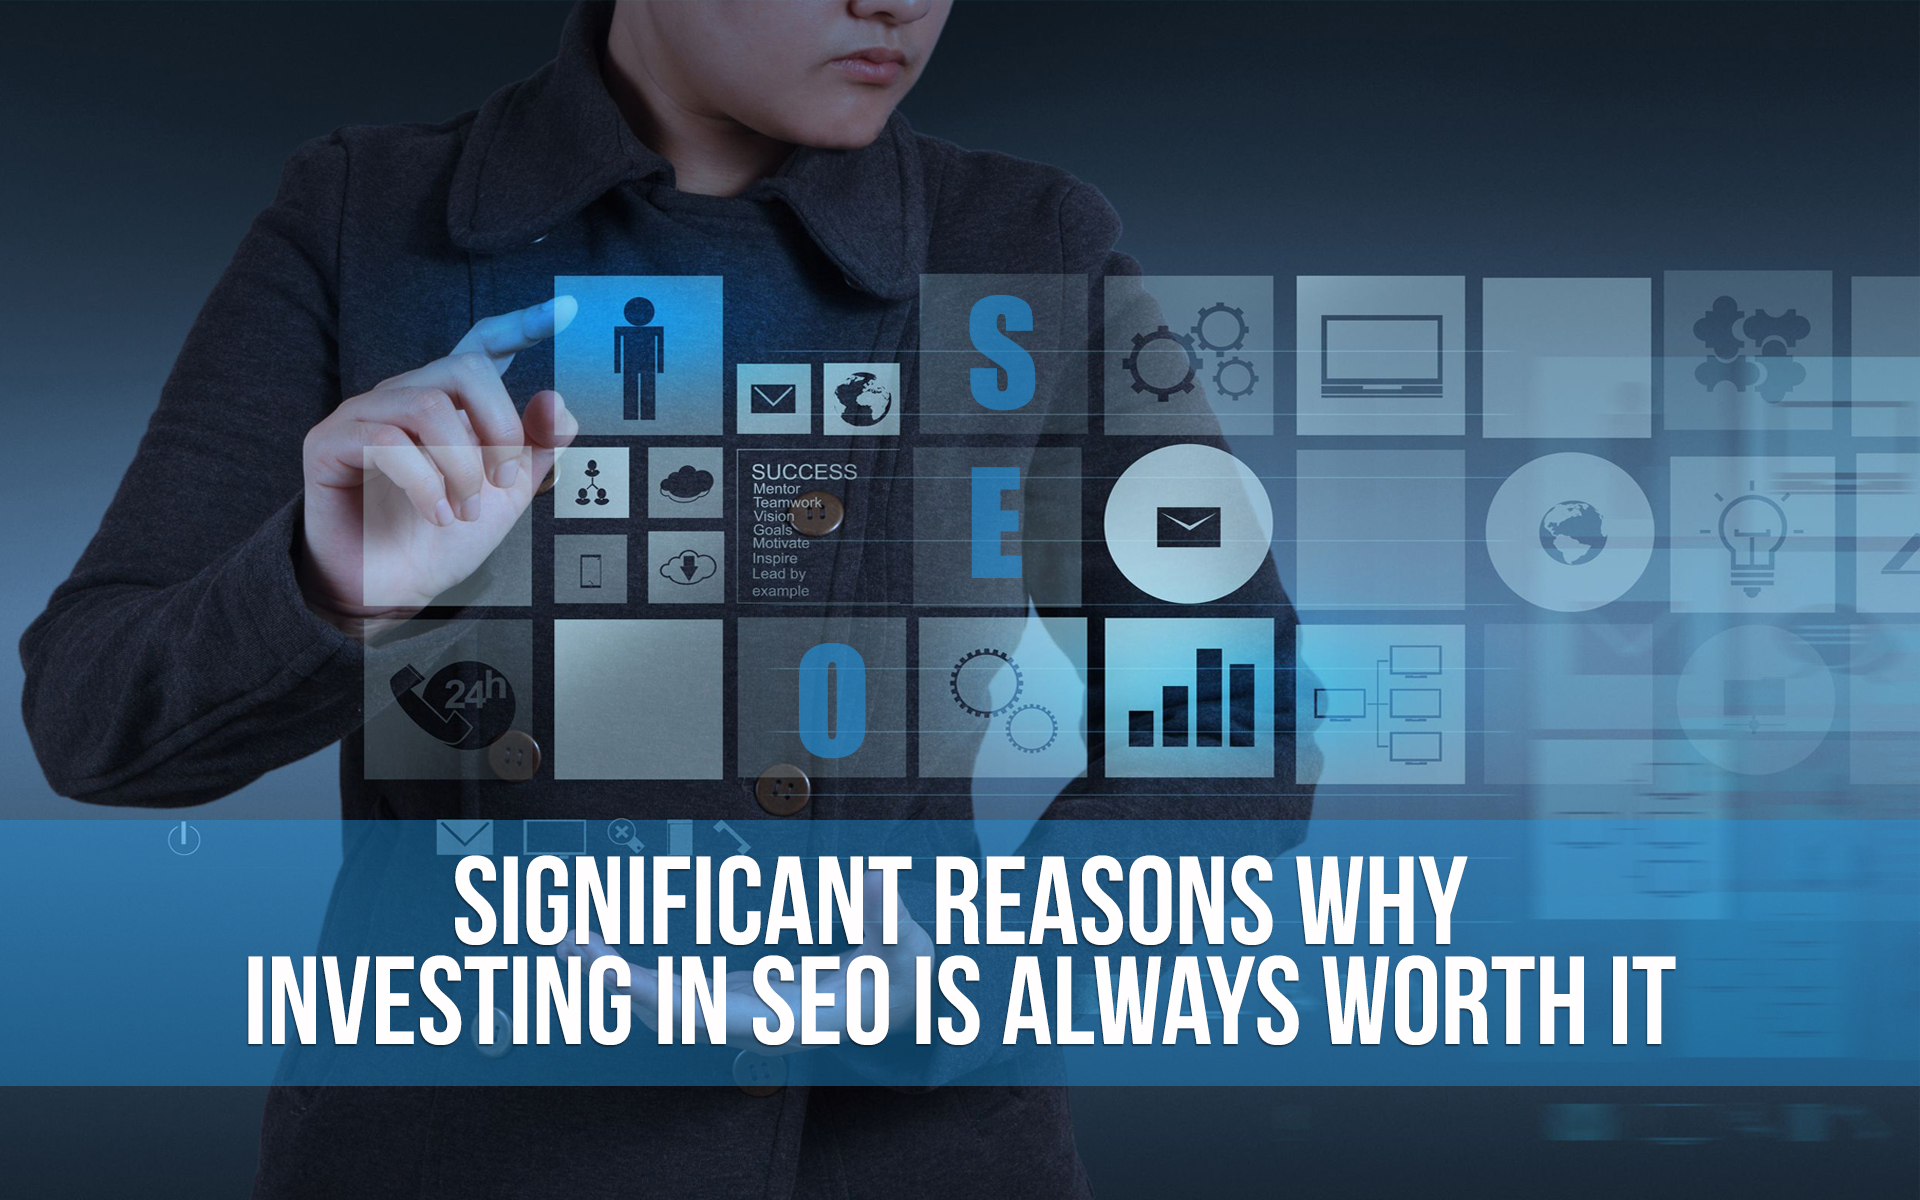 Significant Reasons Why Investing in SEO is Always Worth it